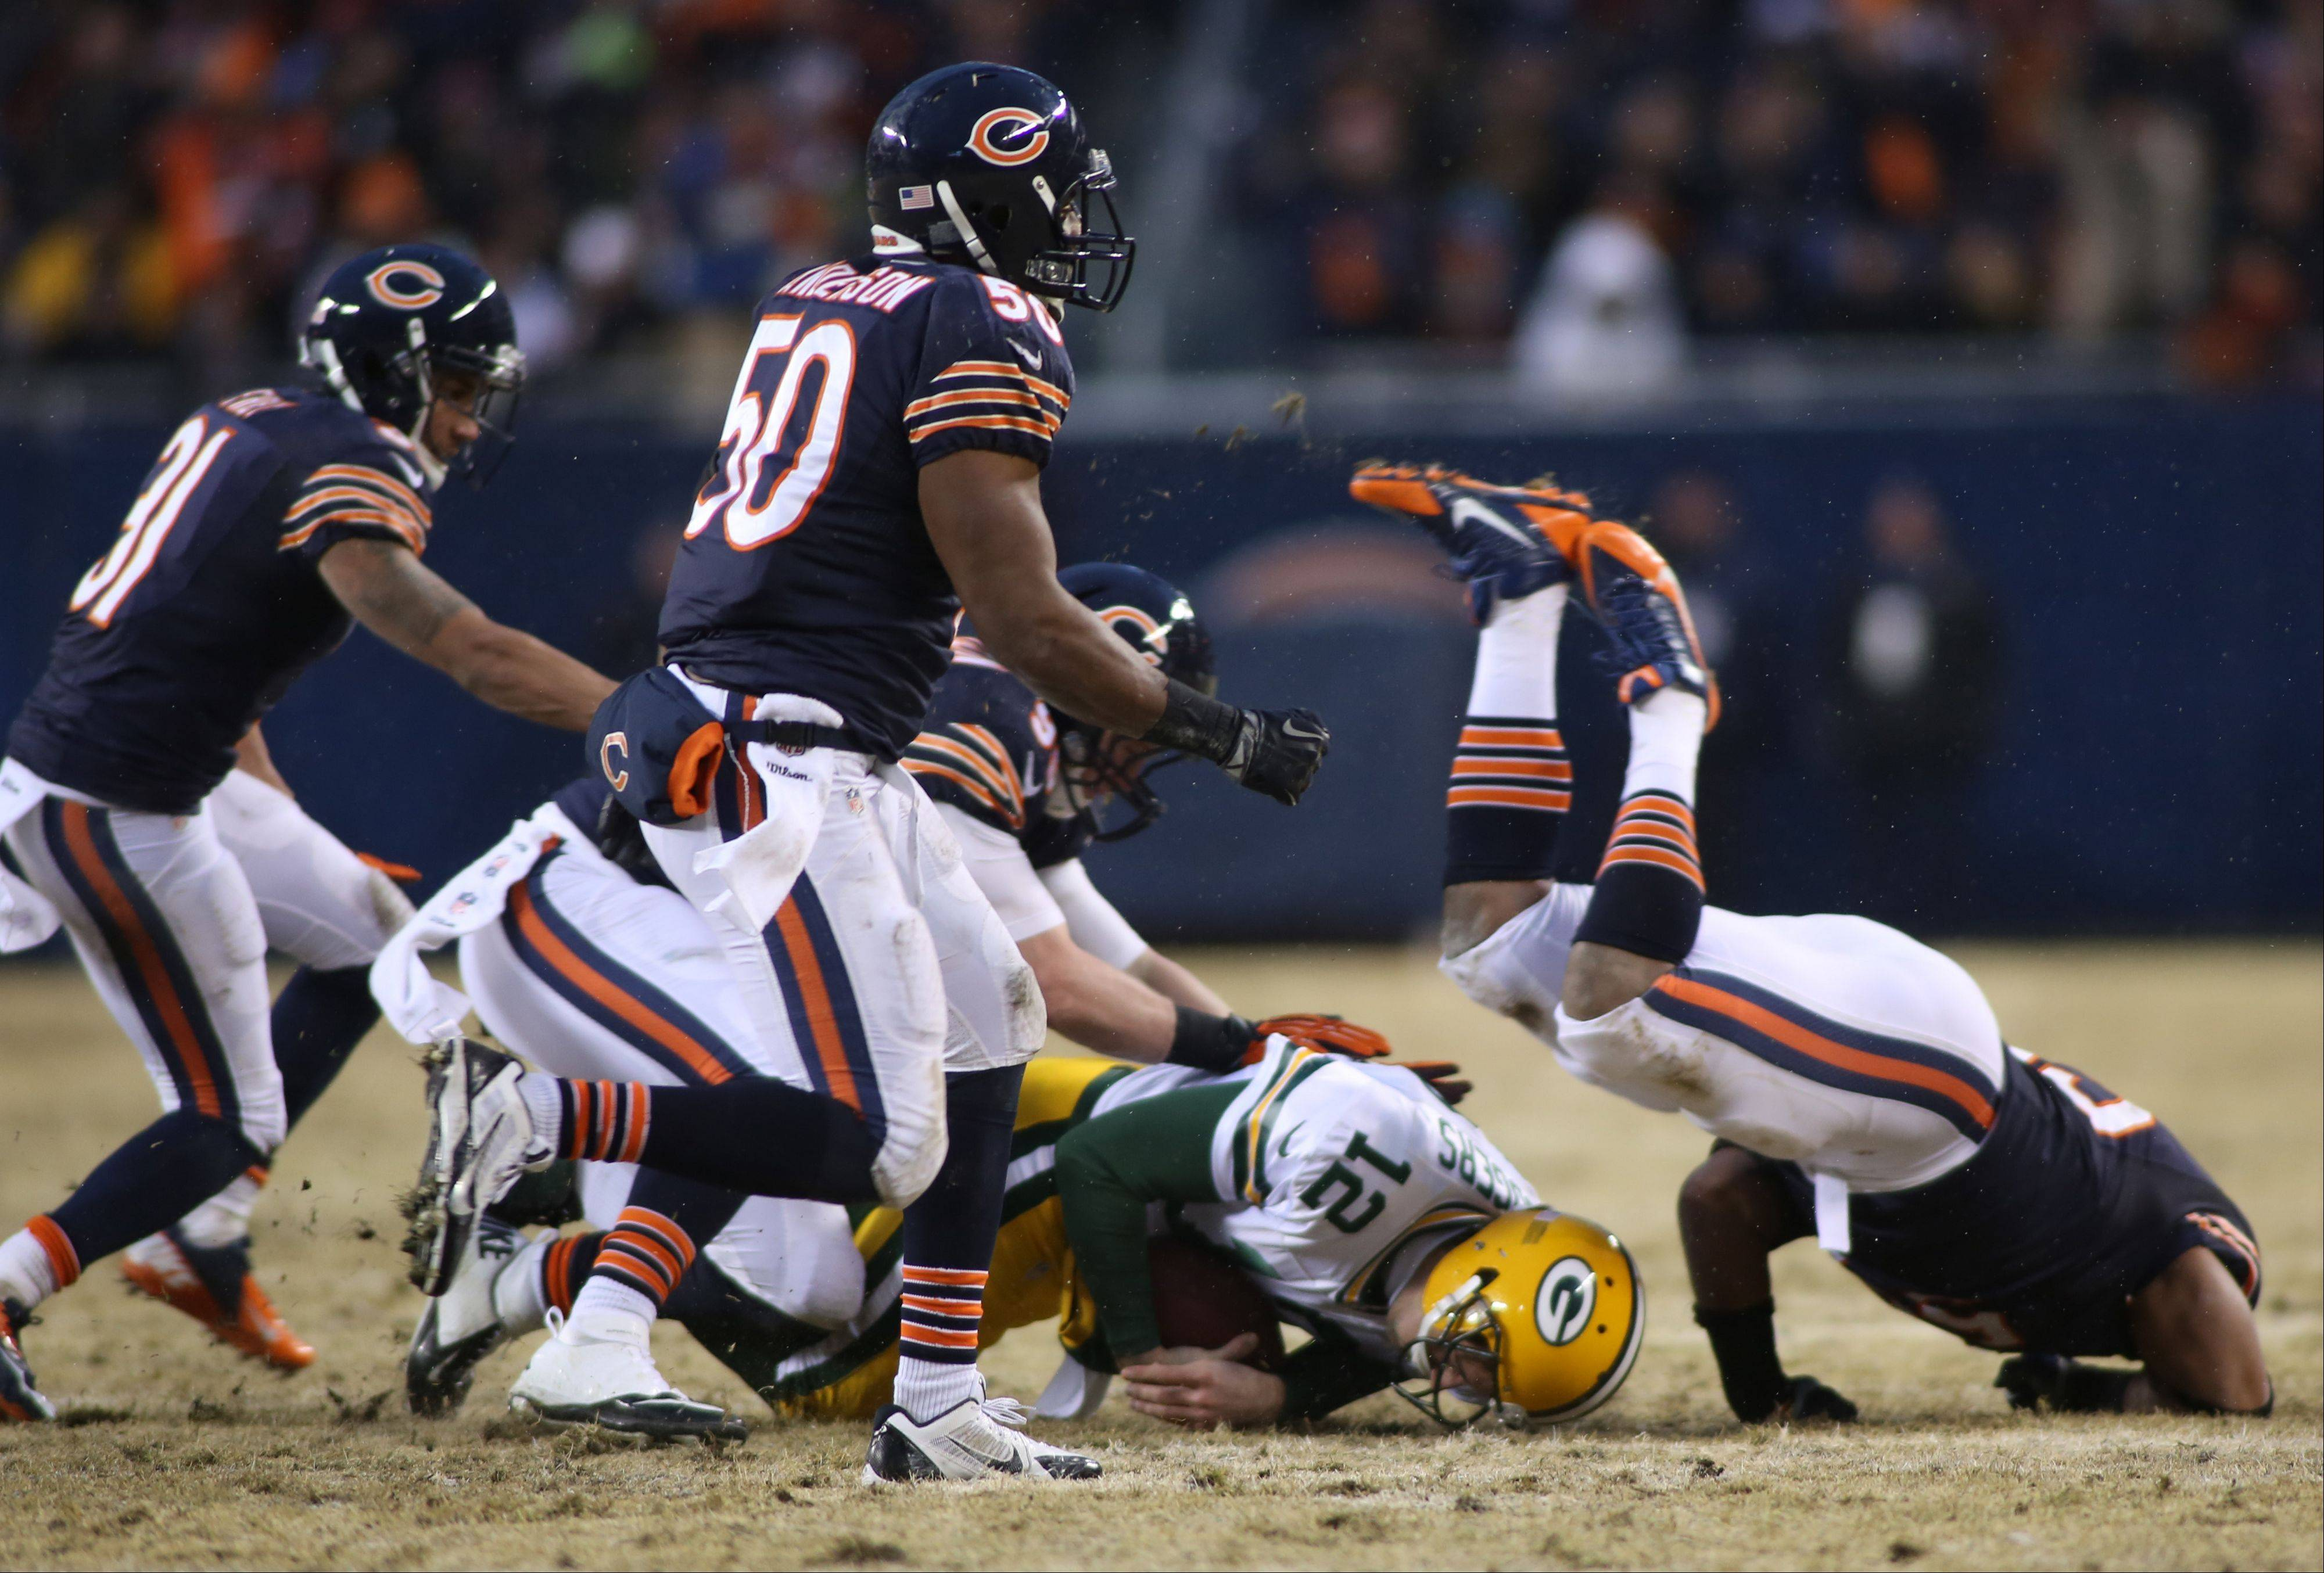 The Bears' defense got the job done against Packers quarterback Aaron Rodgers on this play Sunday at Soldier Field.